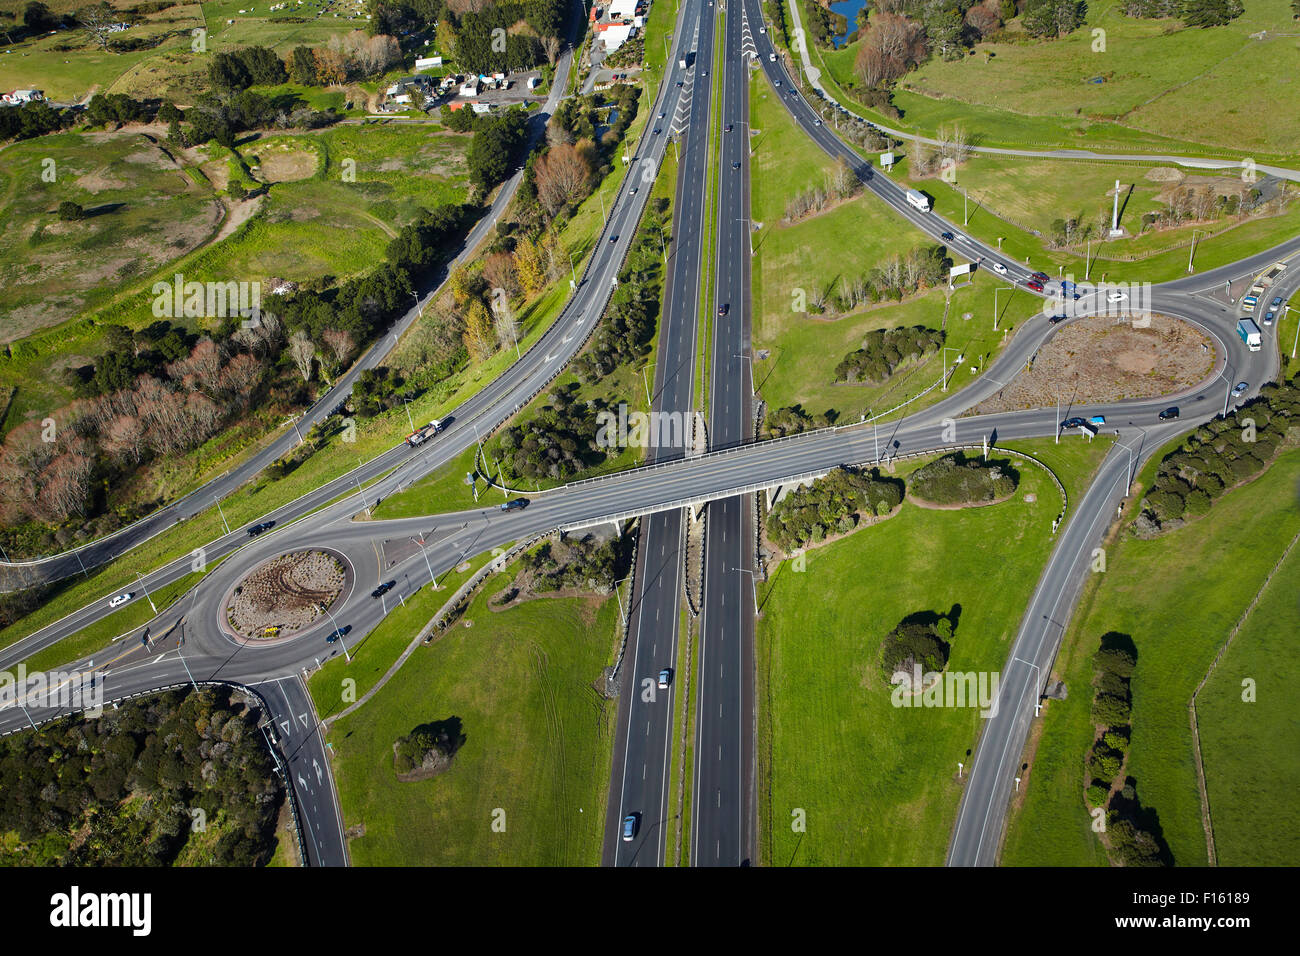 Northern Motorway interchange at Silverdale, North Auckland, North Island, New Zealand - aerial - Stock Image